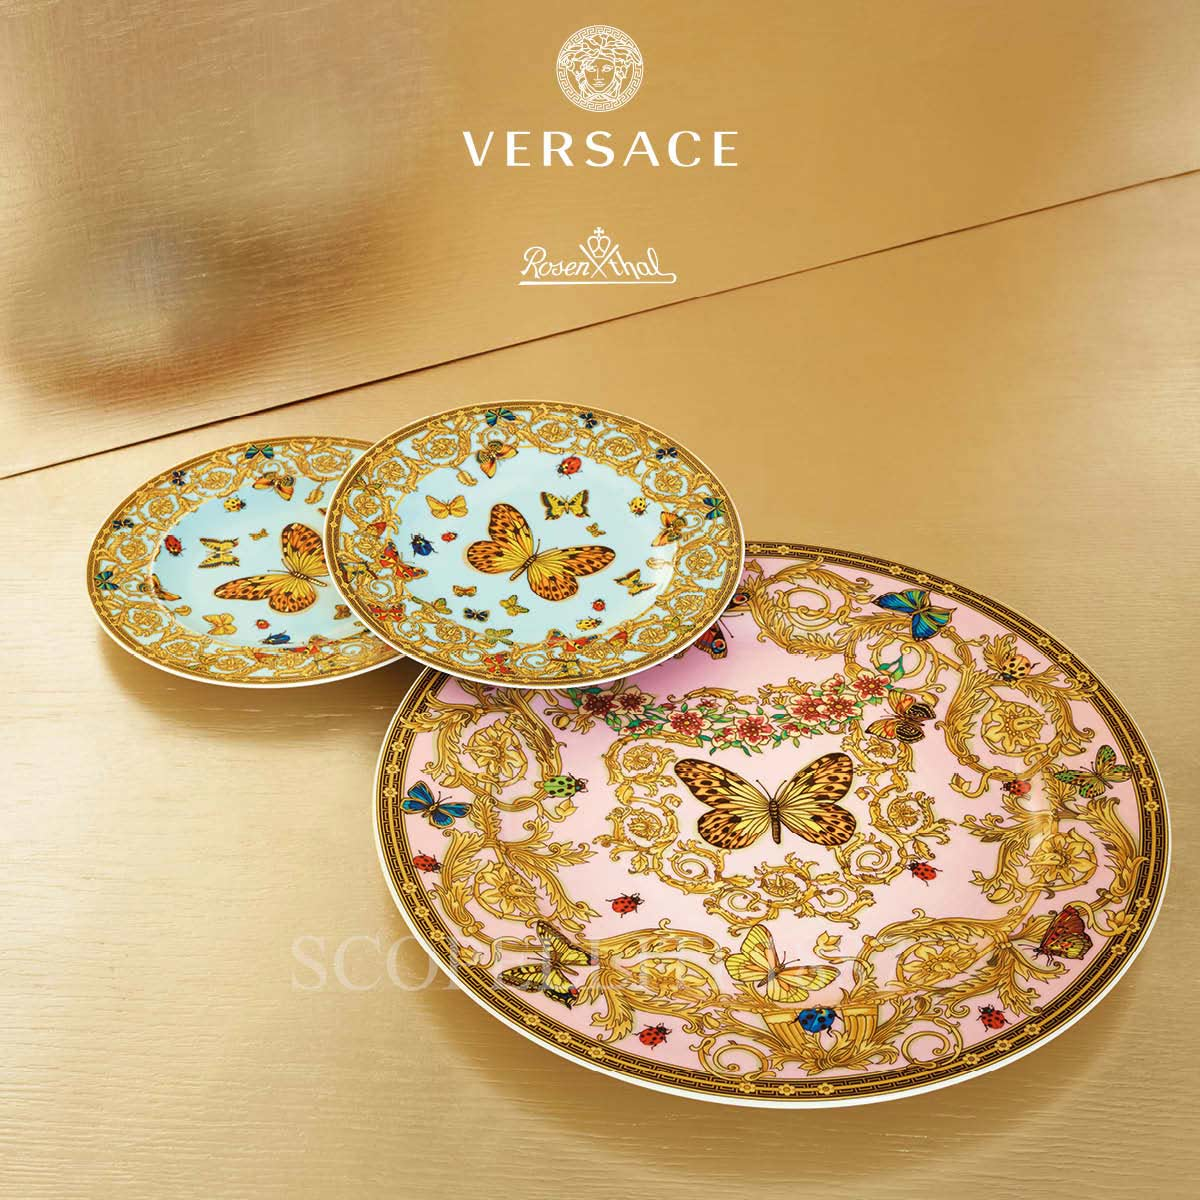 versace butterfly plates